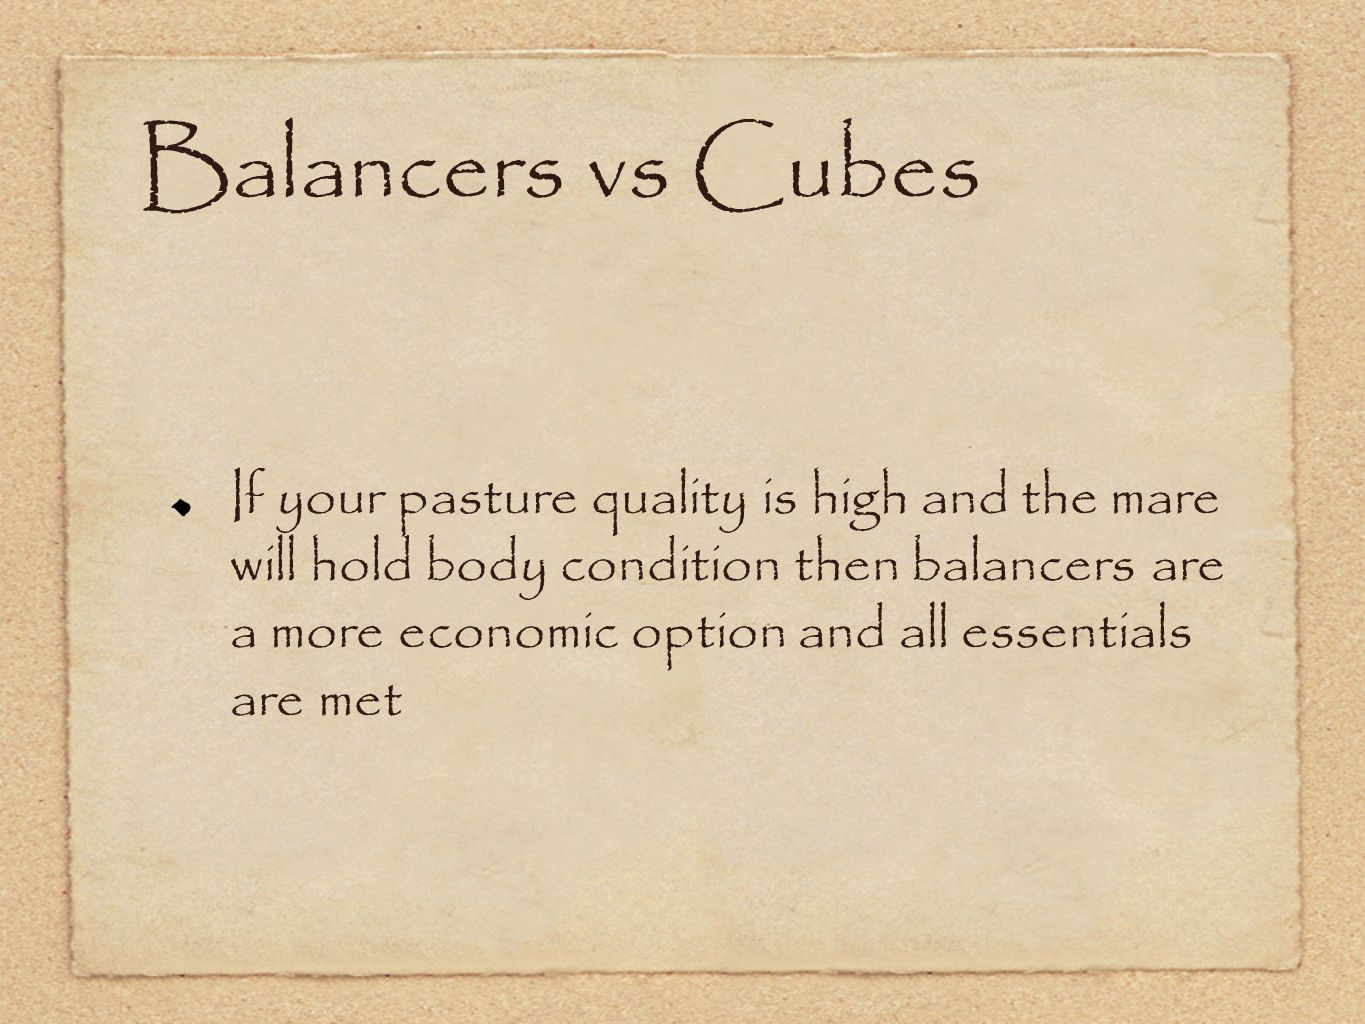 Balancers vs Cubes If your pasture quality is high and the mare will hold body condition then balancers are a more economic option and all essentials are met